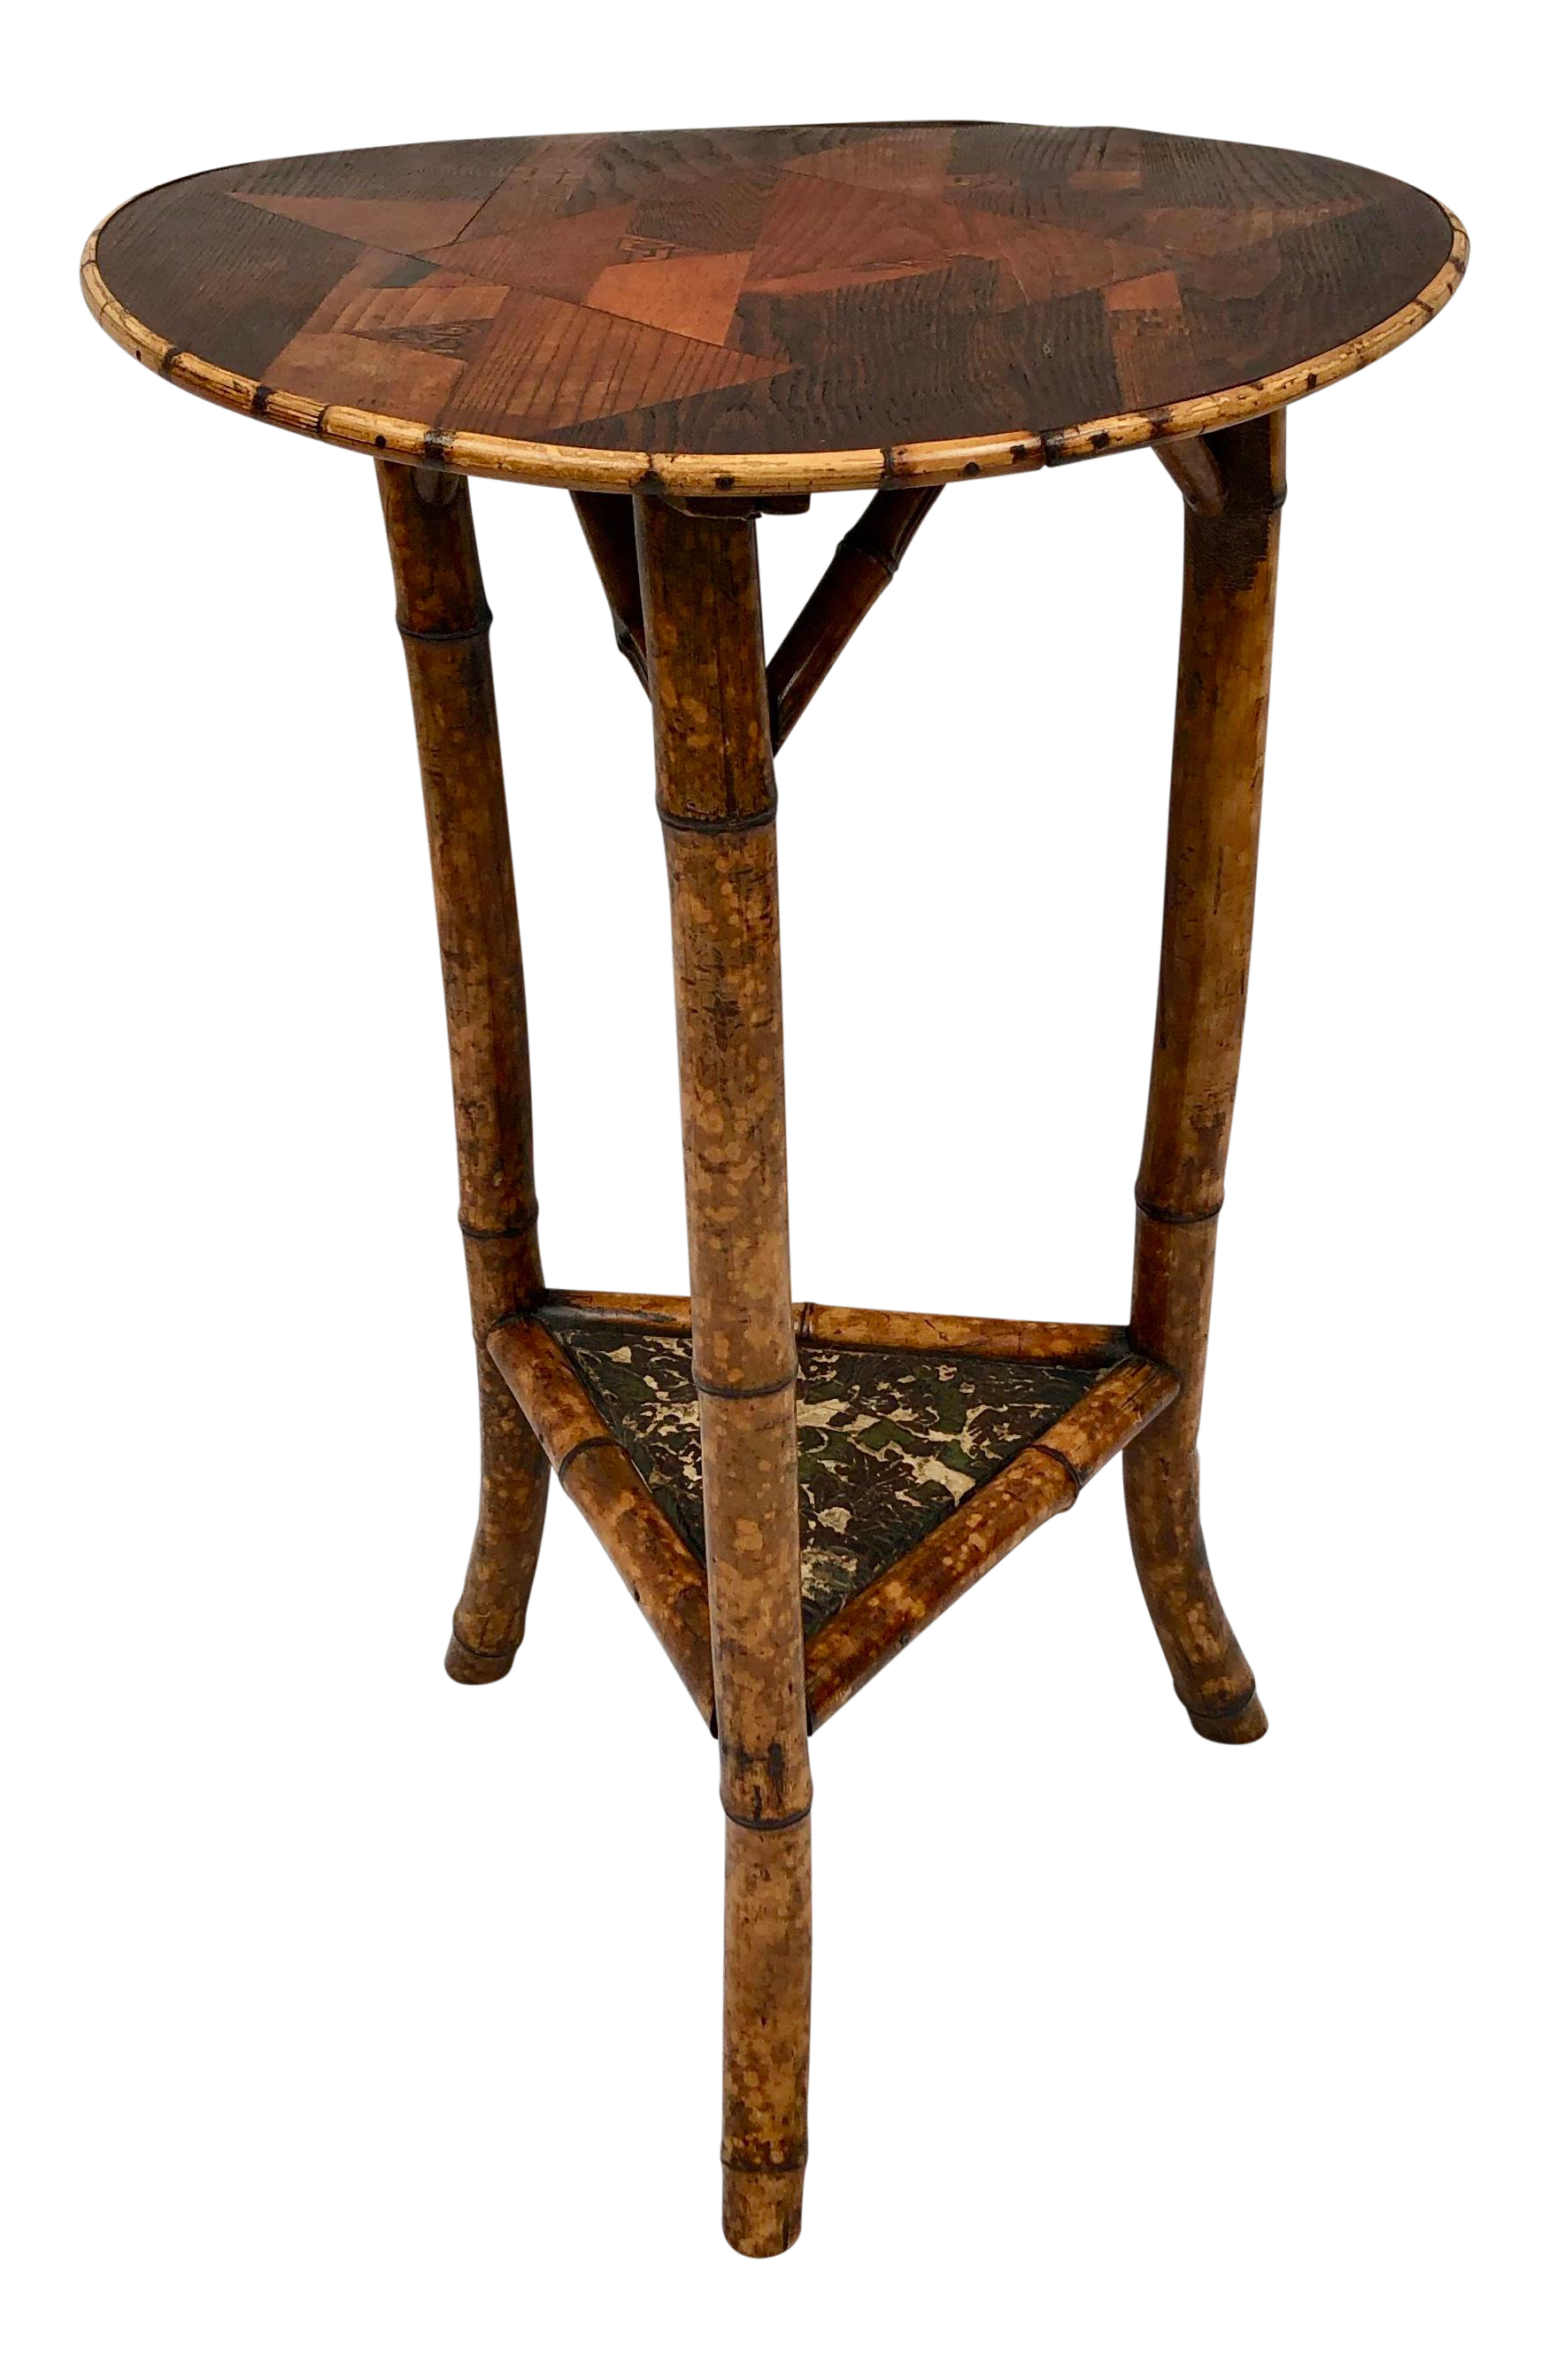 Miraculous 1970S Asian Round Tortoiseshell Bamboo Accent Table With Home Interior And Landscaping Ologienasavecom